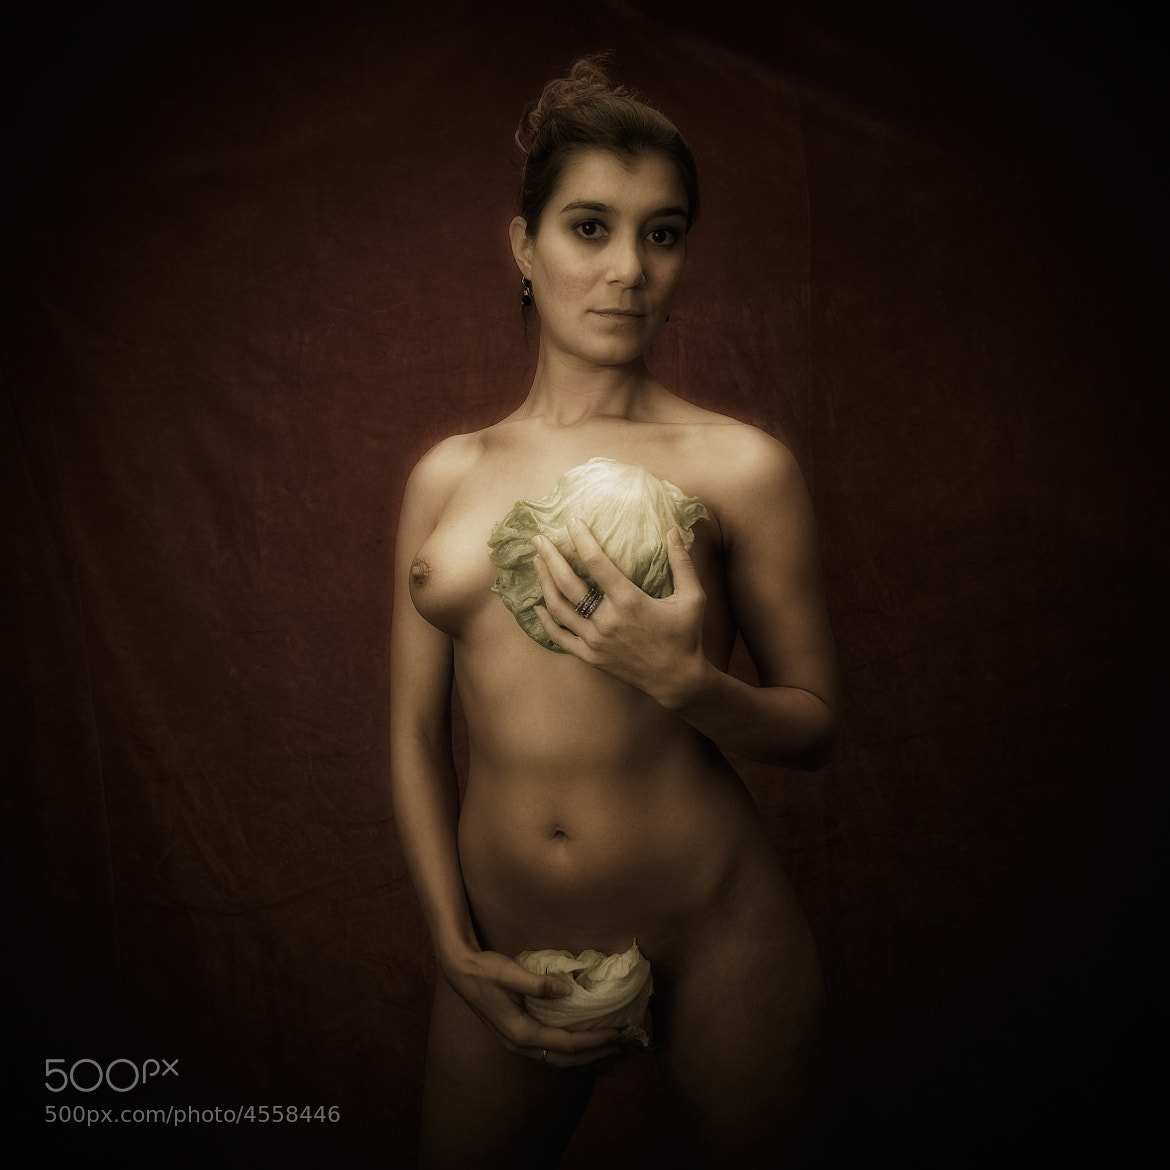 Photograph Woman with vegetable. by Bert Hanekamp on 500px